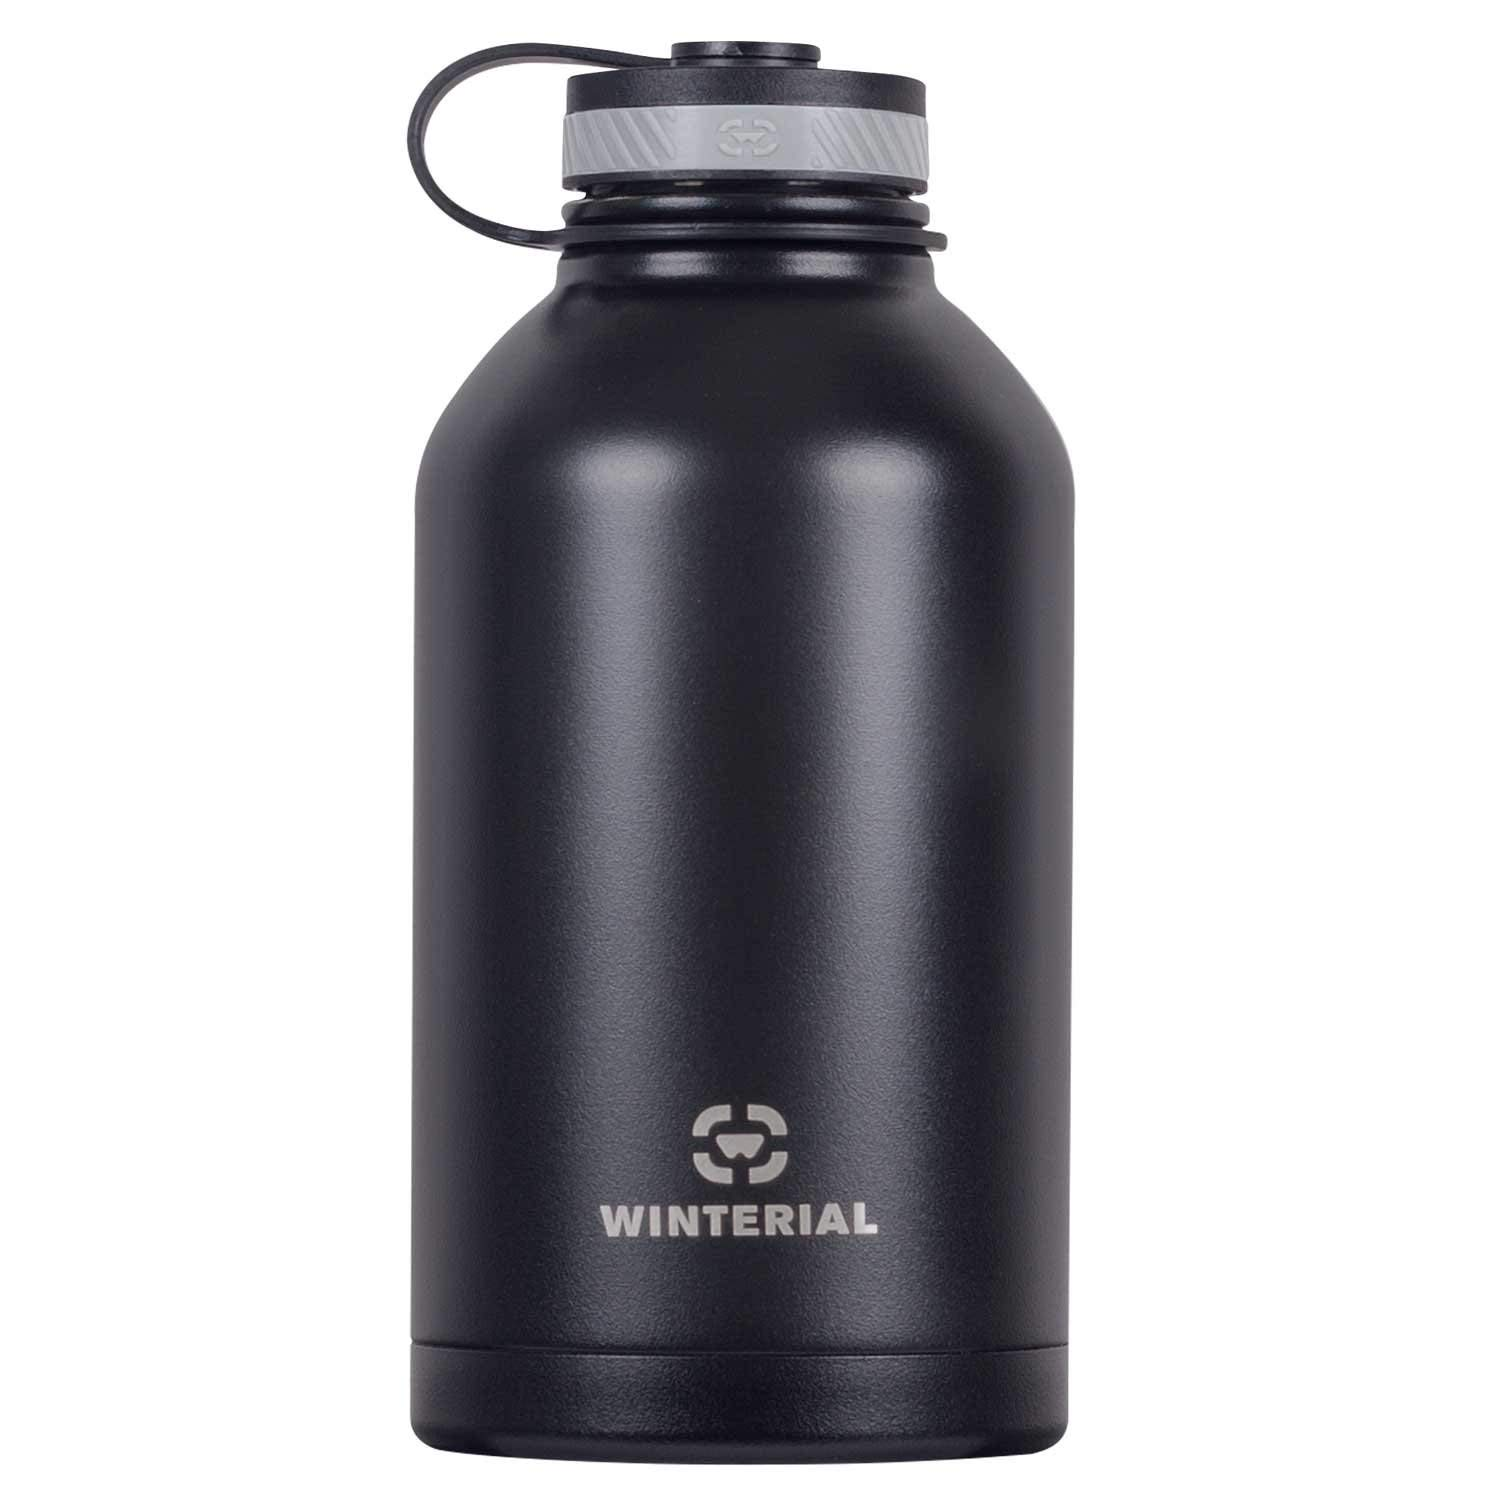 Winterial 64 oz Insulated Growler and Steel Water Bottle, Beer Growler, Double Walled Thermos Flask, Insulated Growler